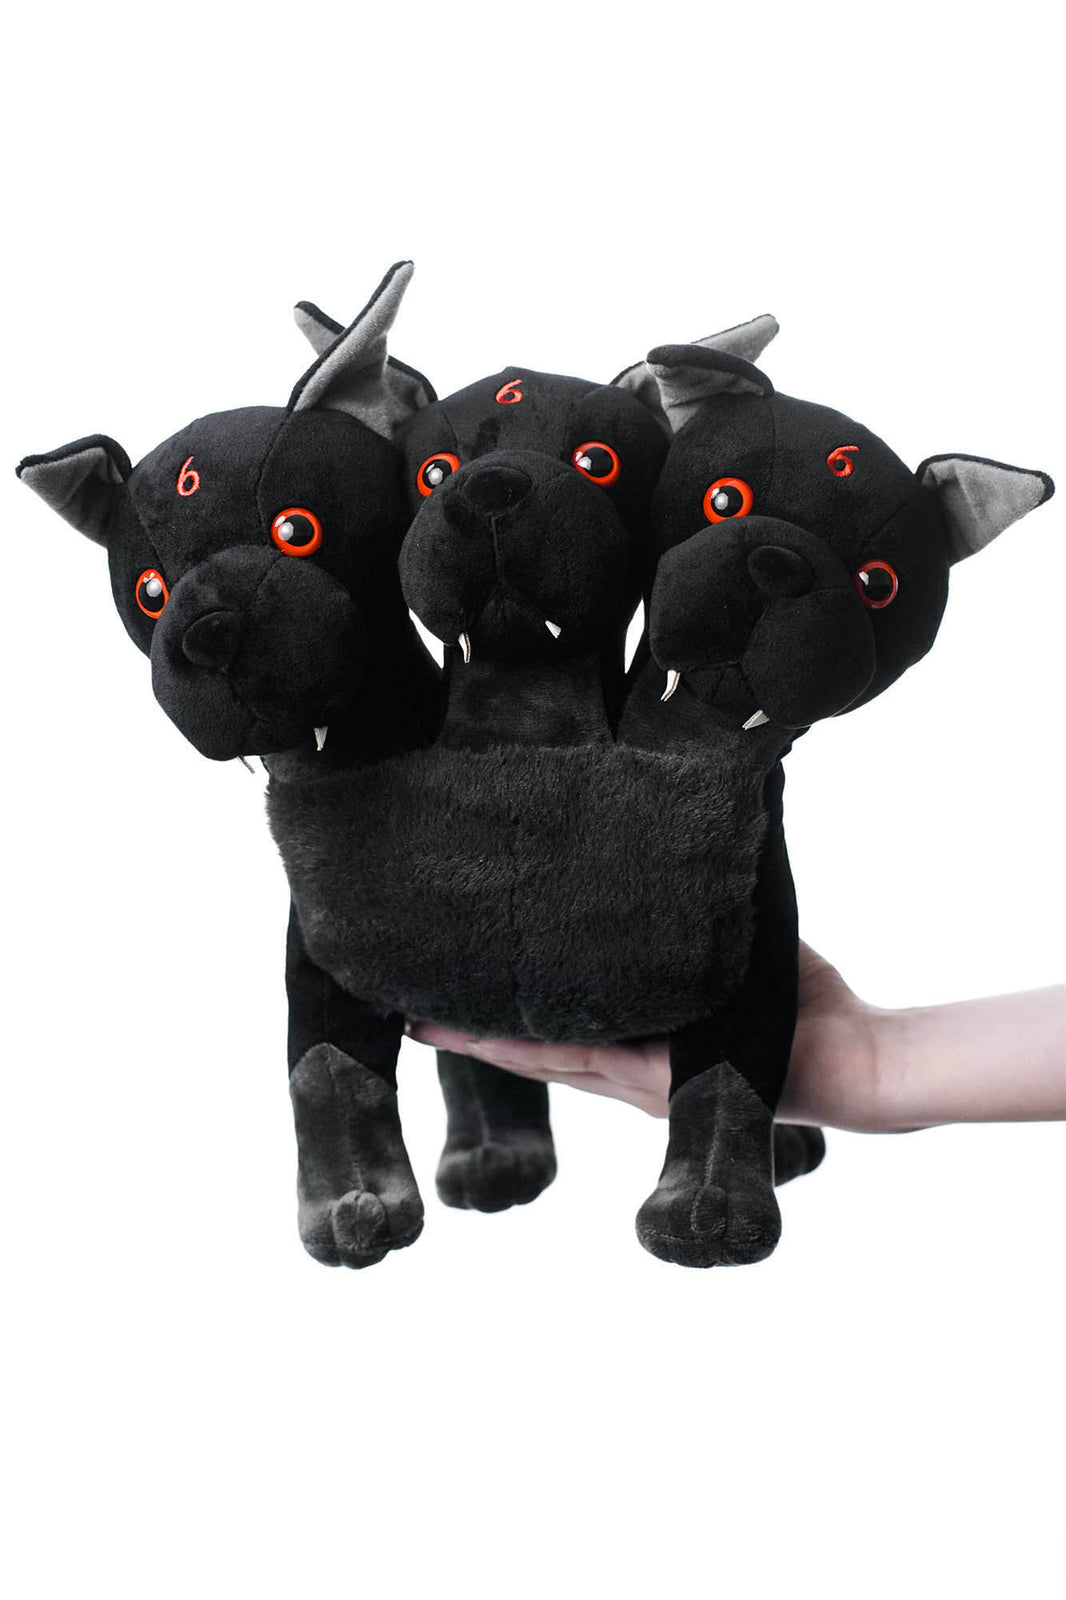 Cerberus Plush Toy